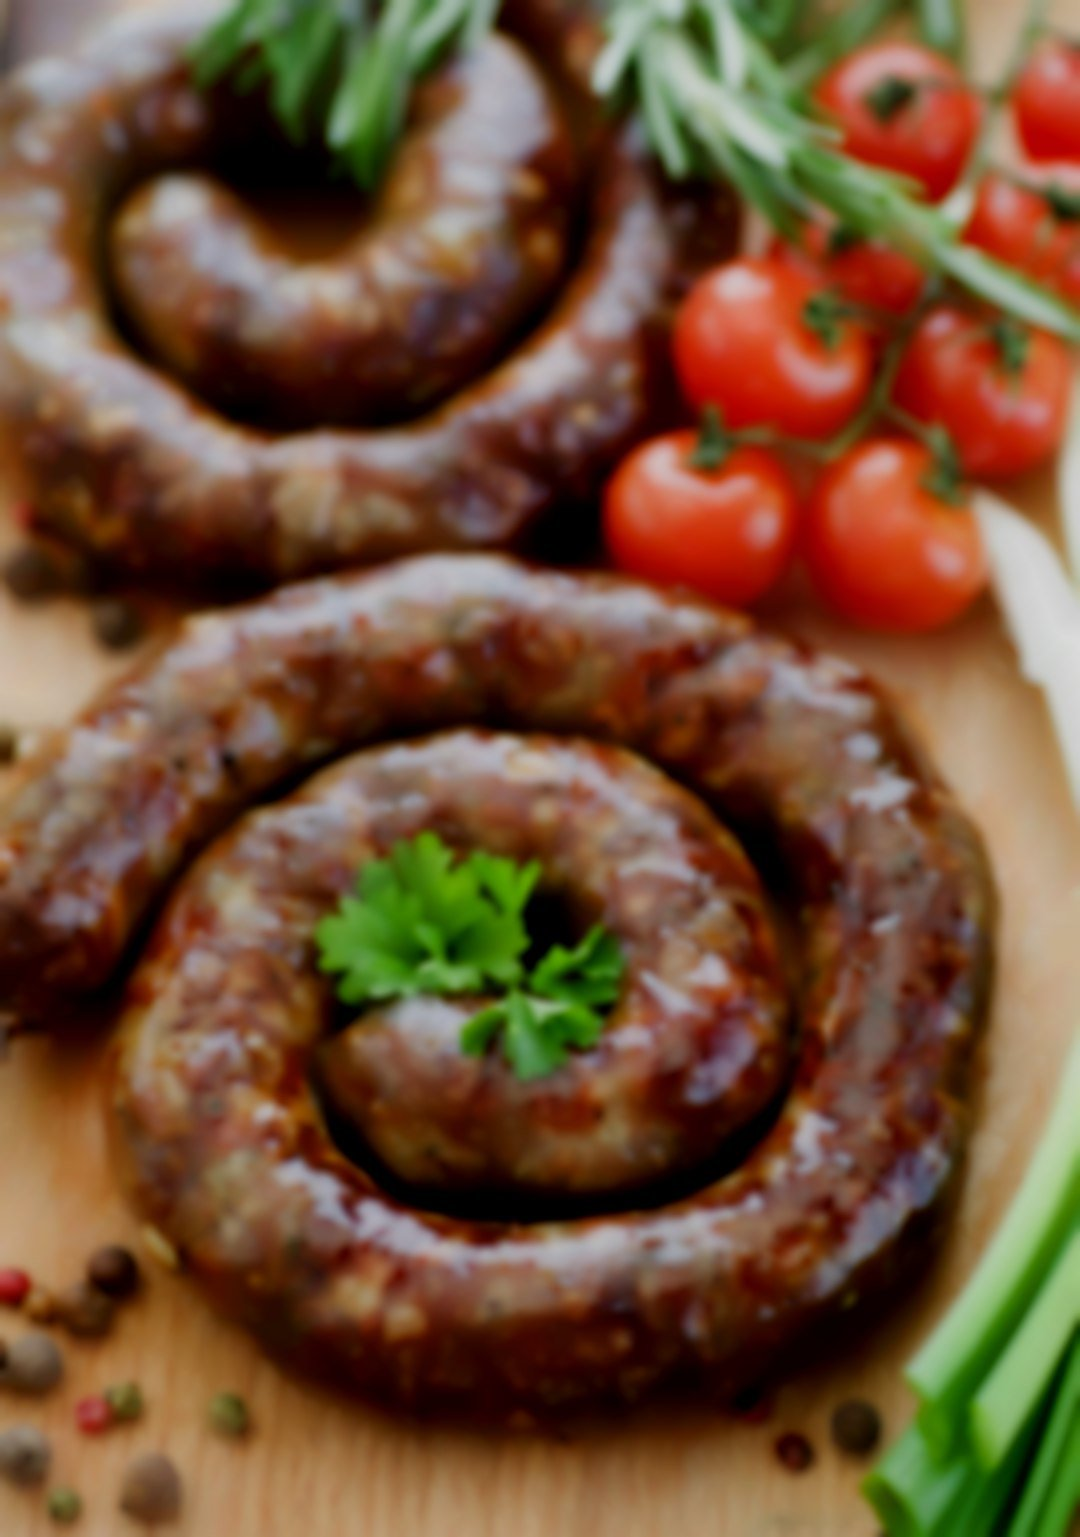 Boerewors off the bbq